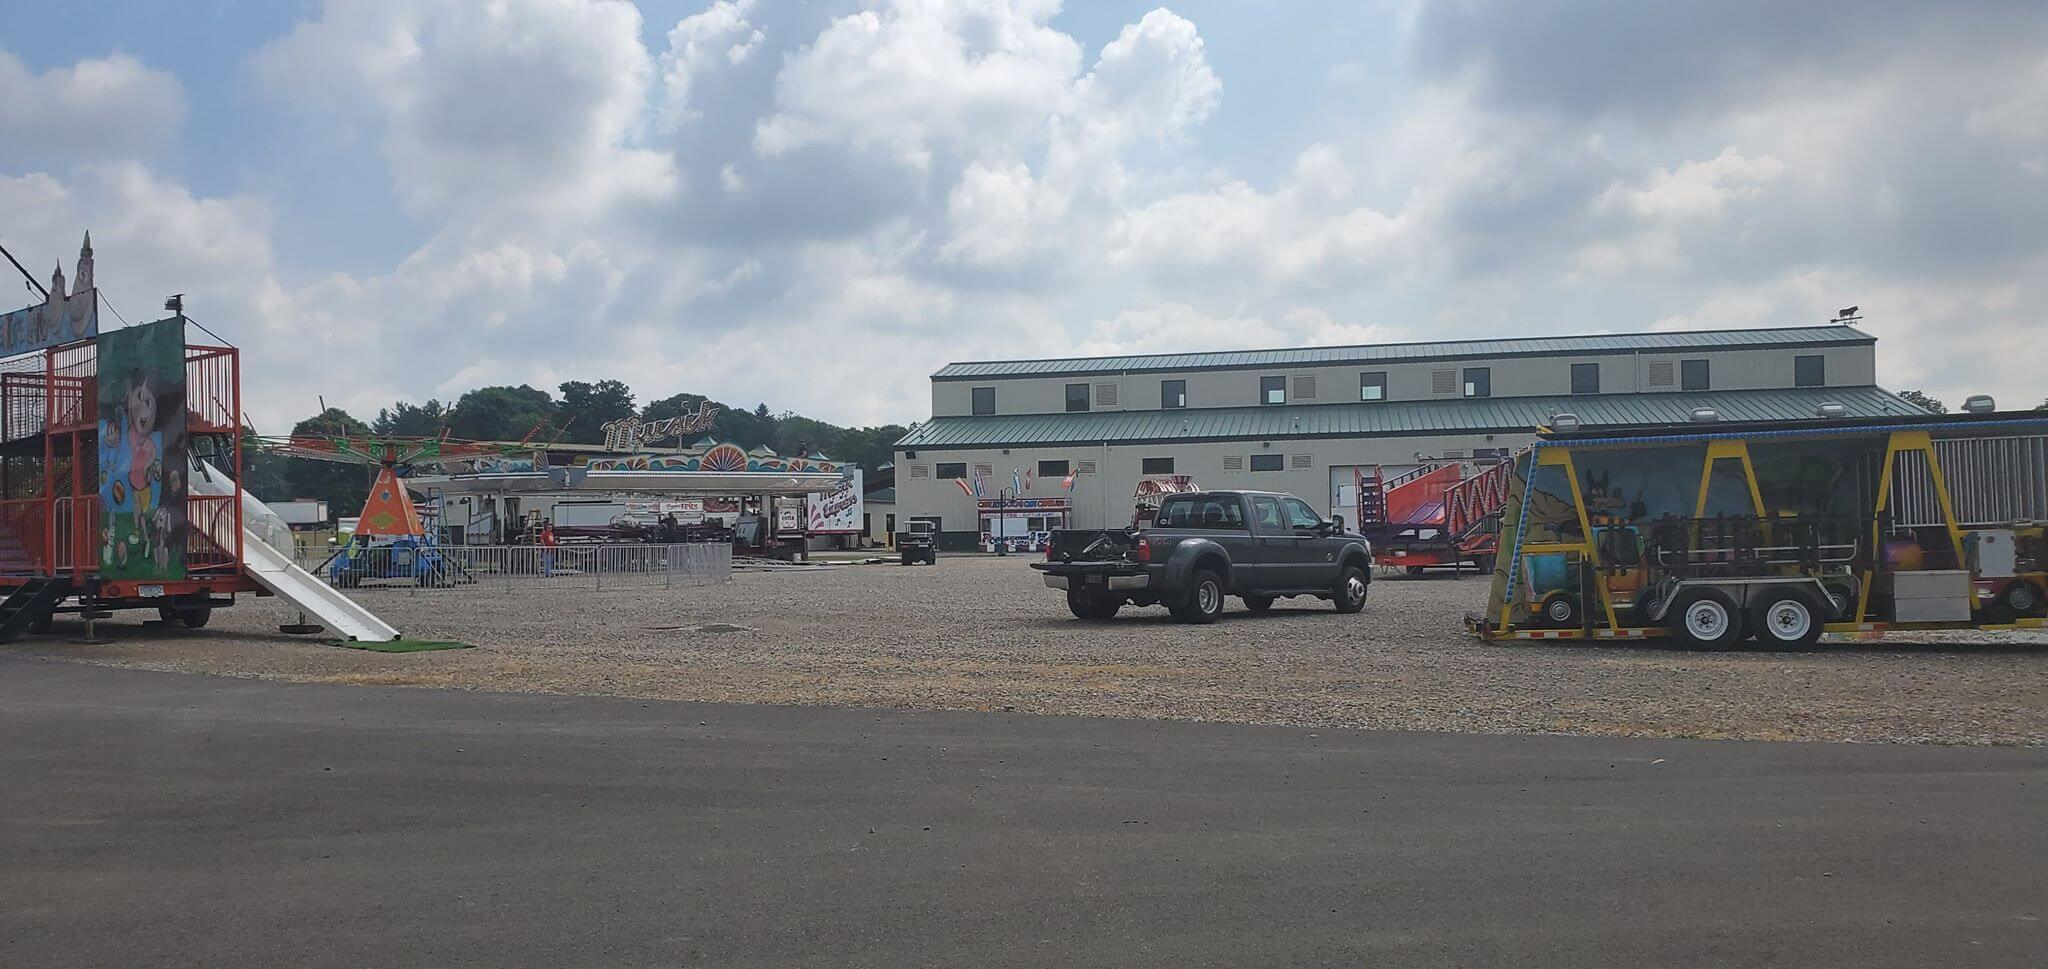 View of the Midway at the Pickaway County Fair